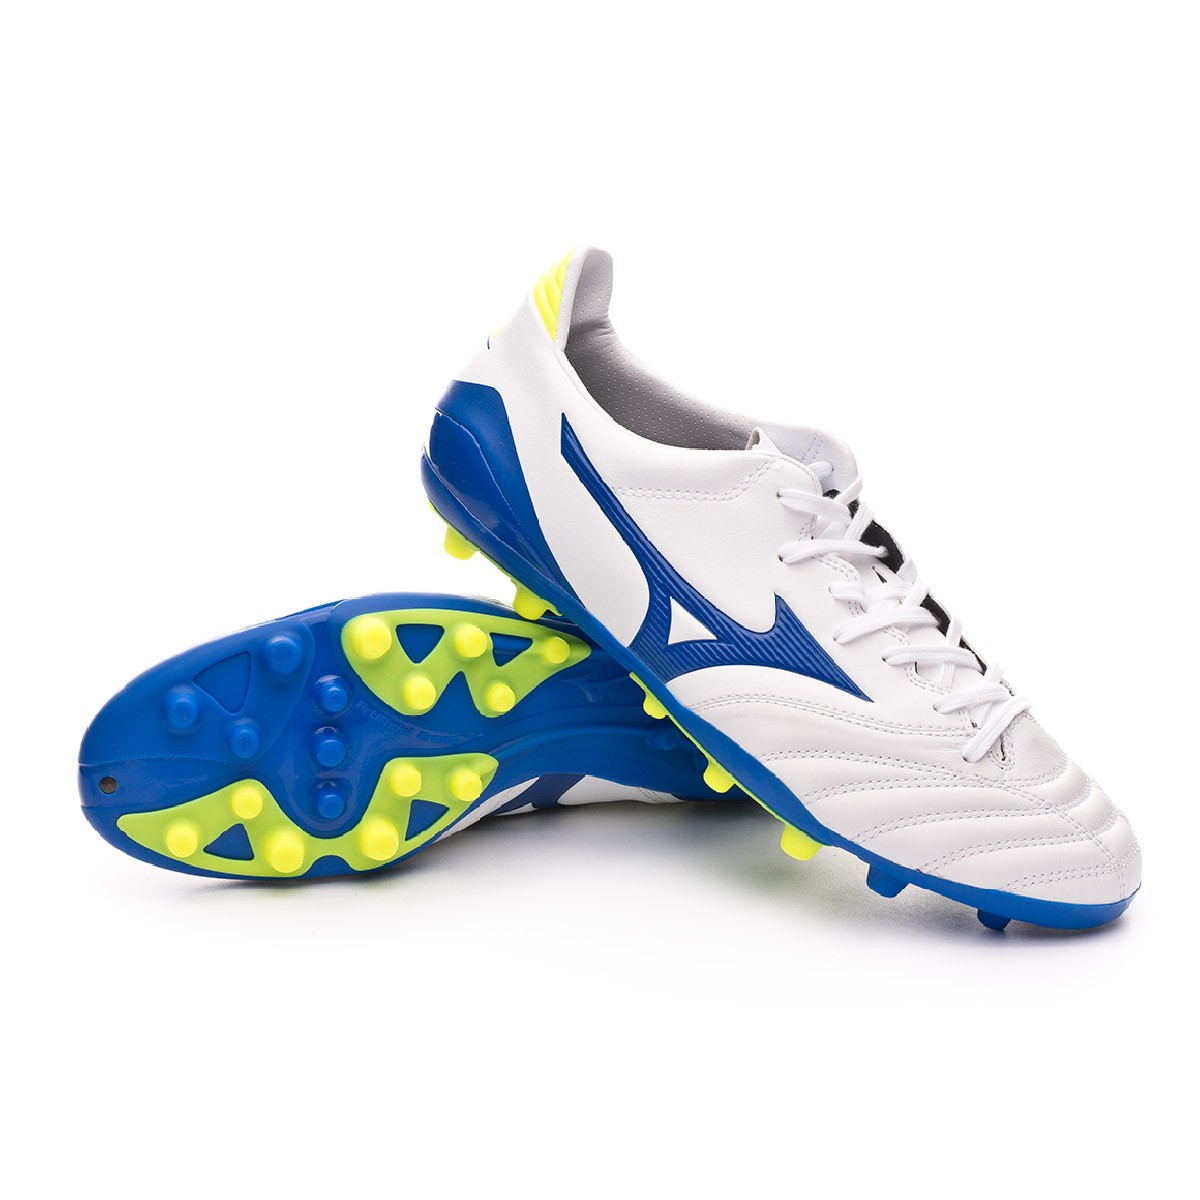 separation shoes 8d0c5 8c51d Bota Morelia Neo KL II AG White-Wave cup blue-Safety yellow